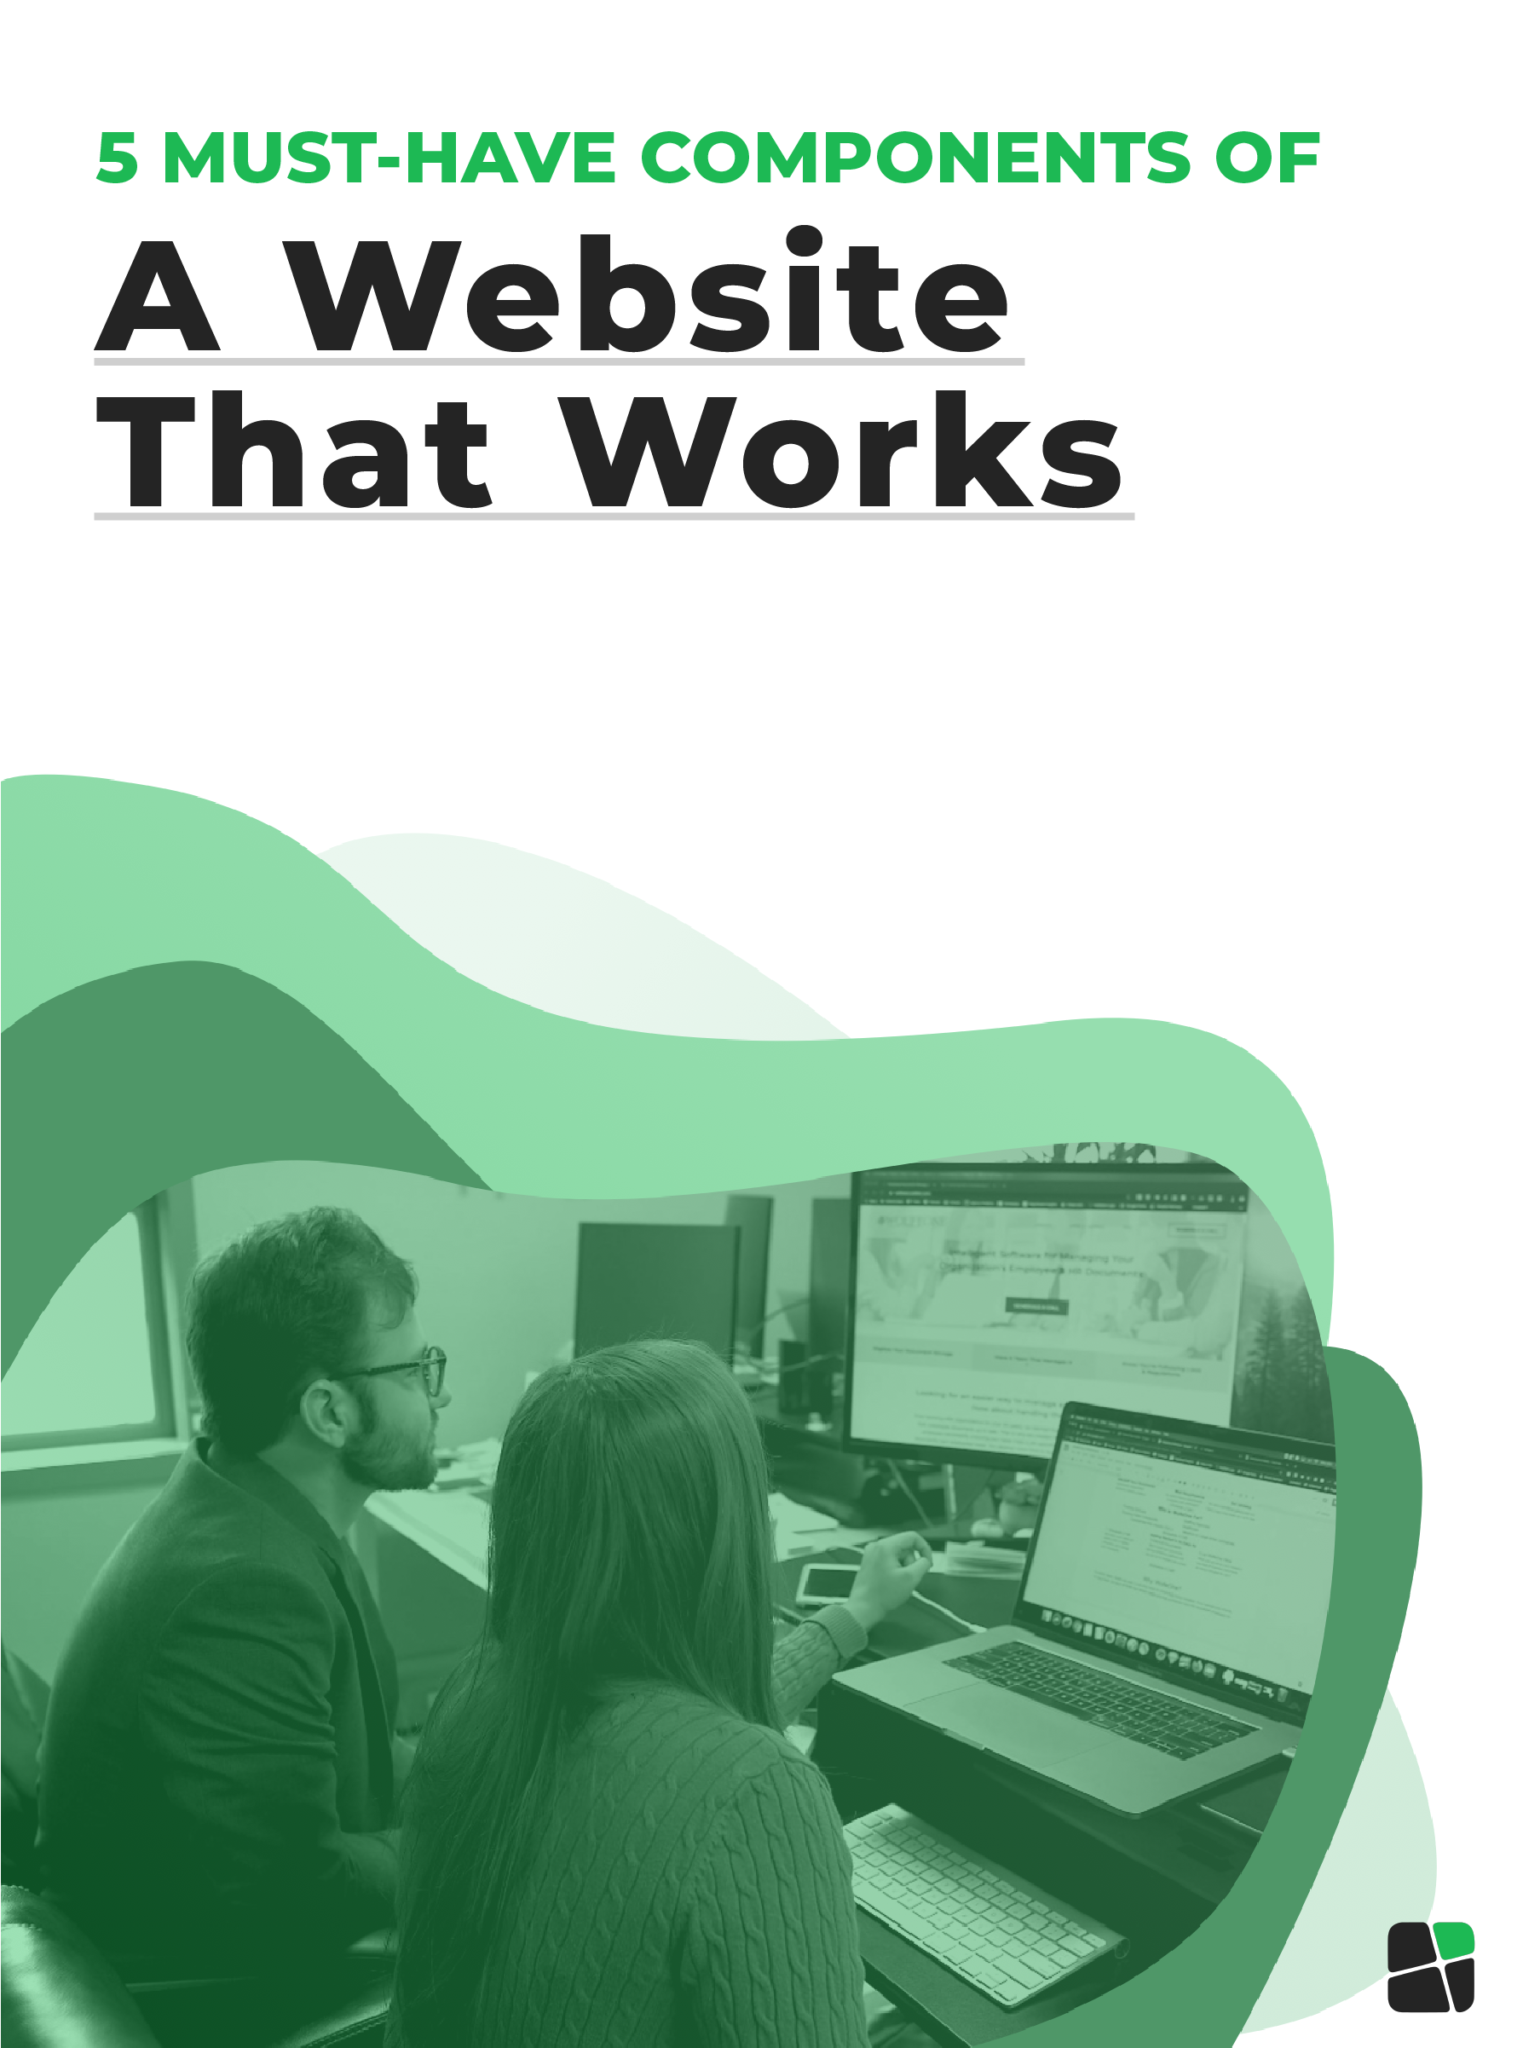 Website That Works_Ebook Cover_Greenstone Media@3x